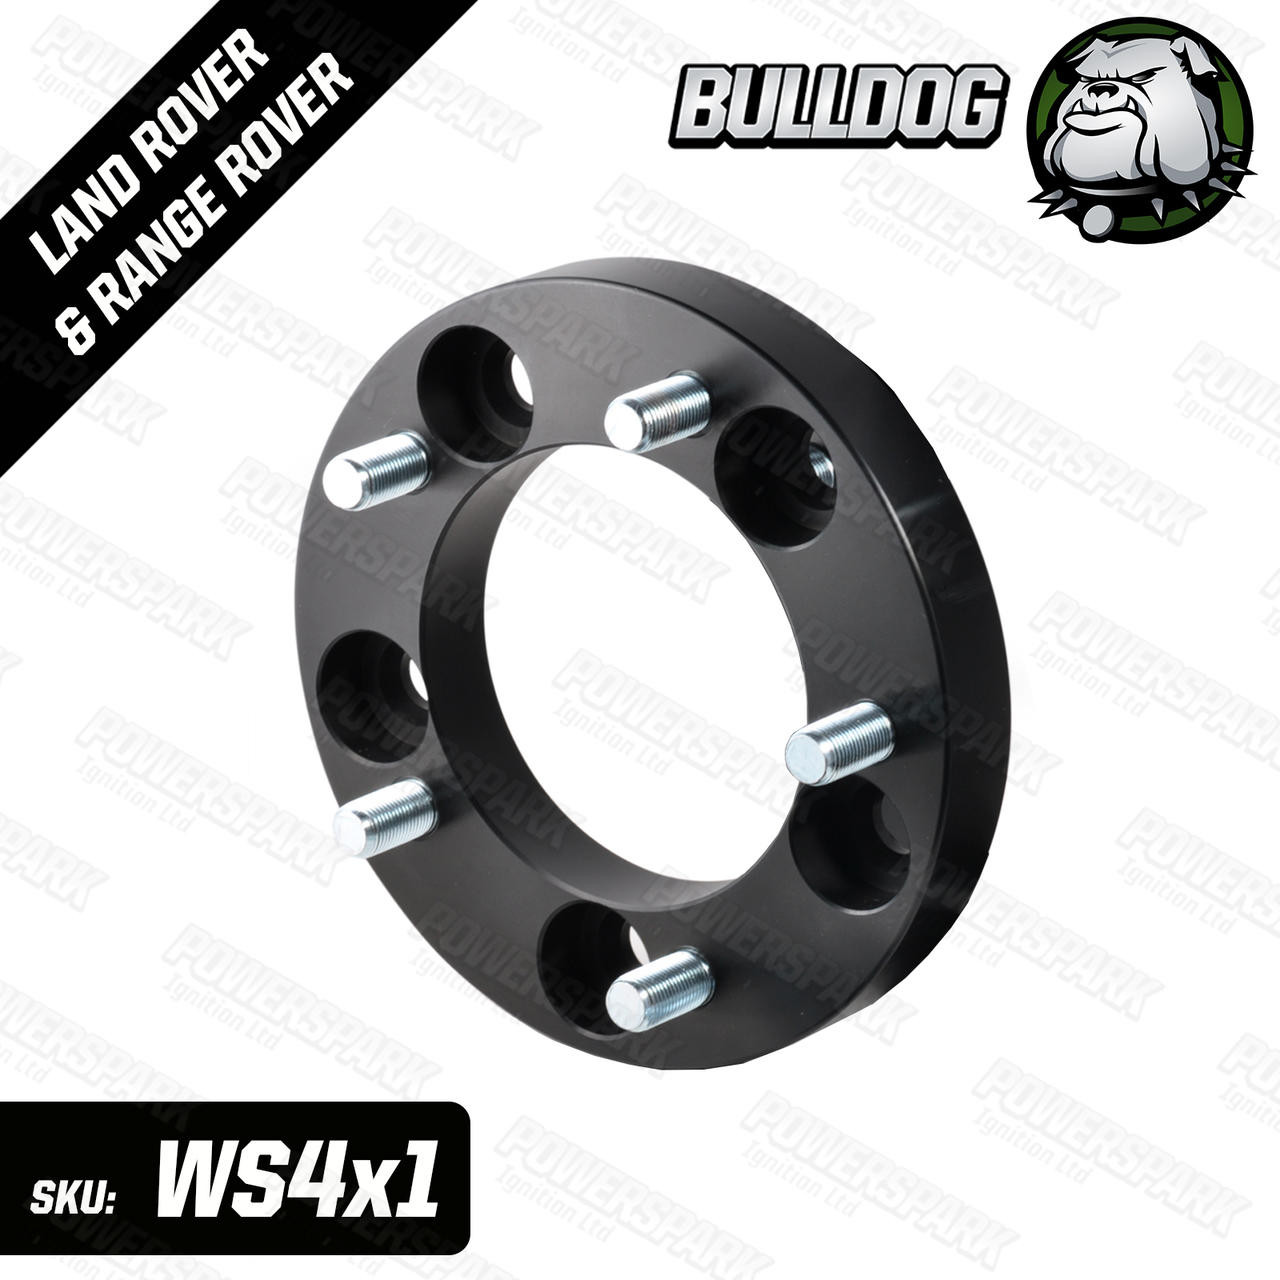 Bulldog 1 Single Bulldog 30mm Wheel Spacer to fit Land Rover Defender, Discovery 1 and RRC Non Hub Centric